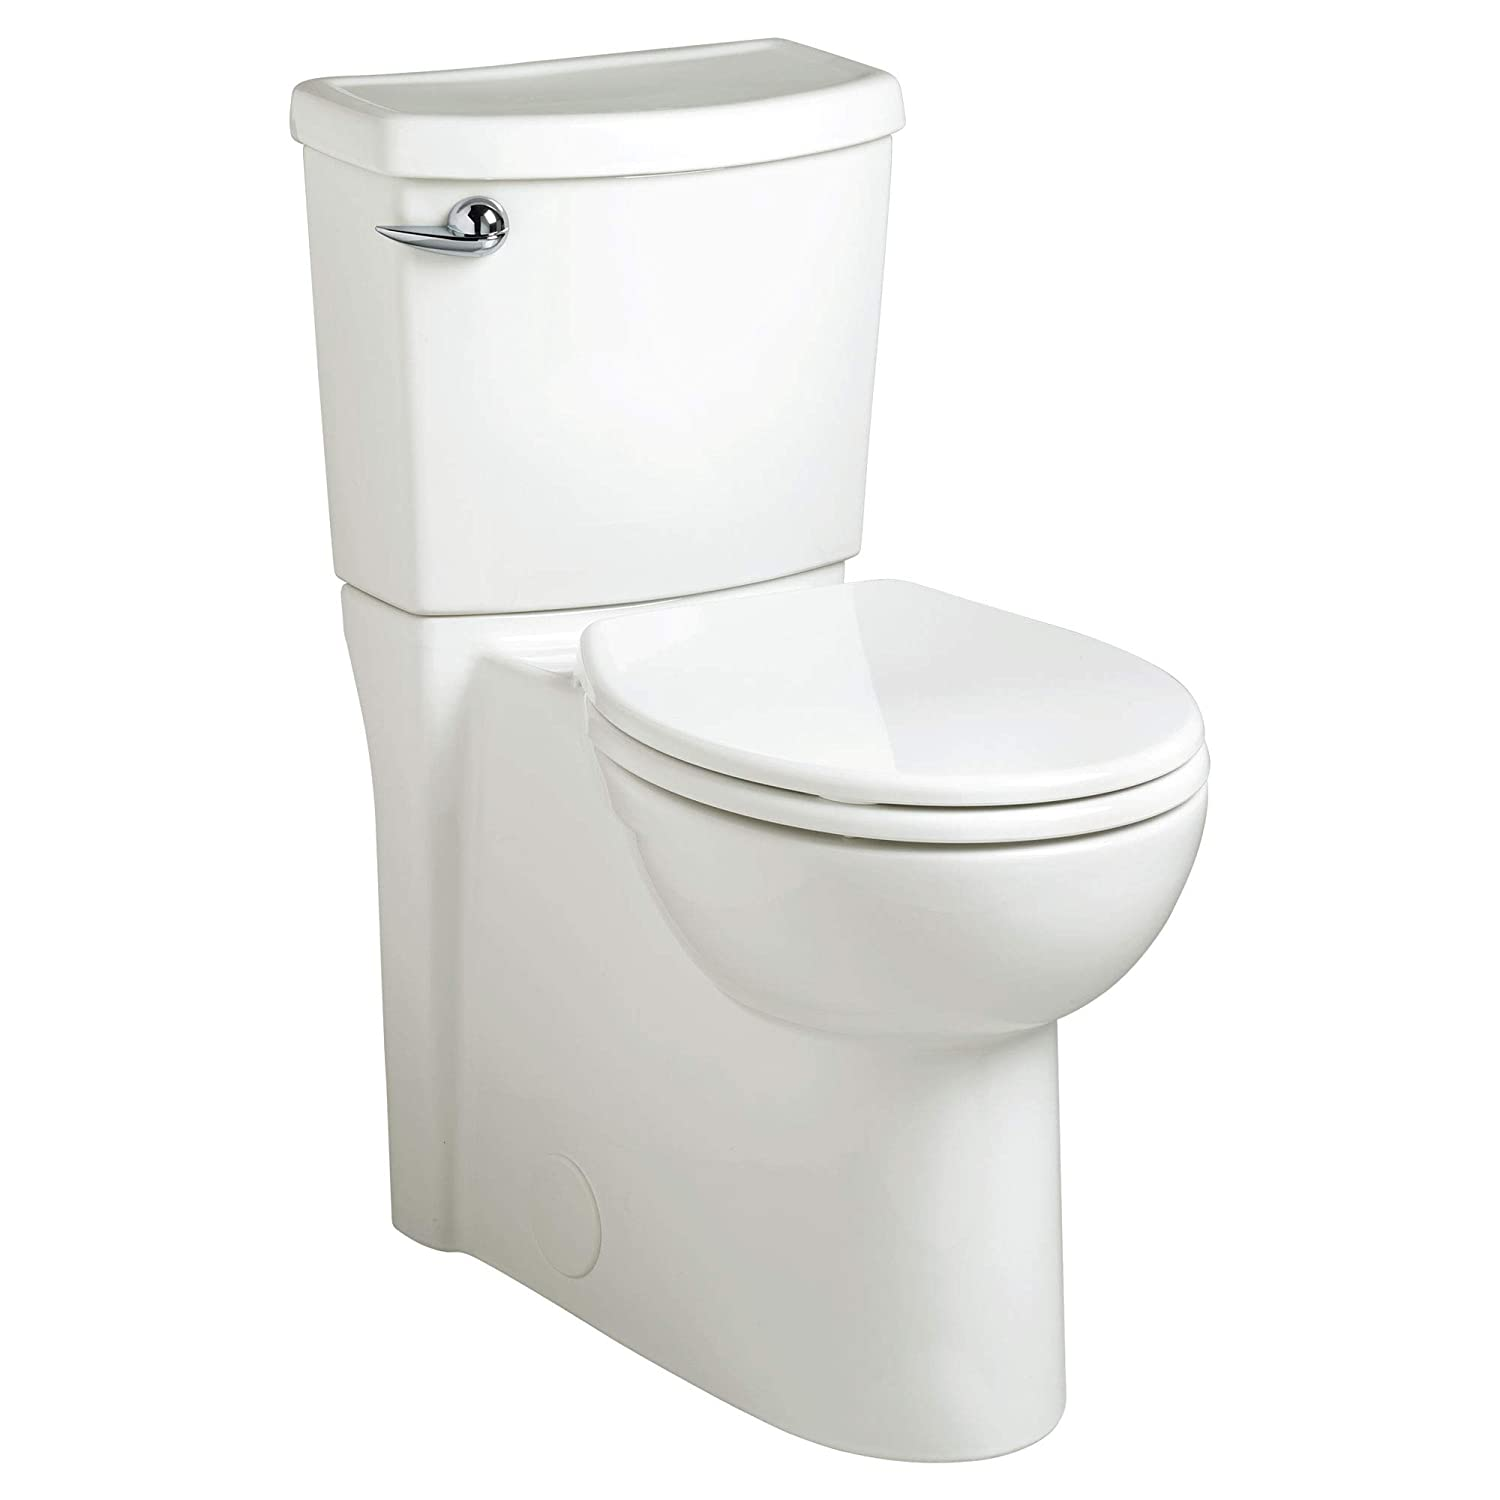 Top 5 Best American Standard Toilets Reviews in 2020 4